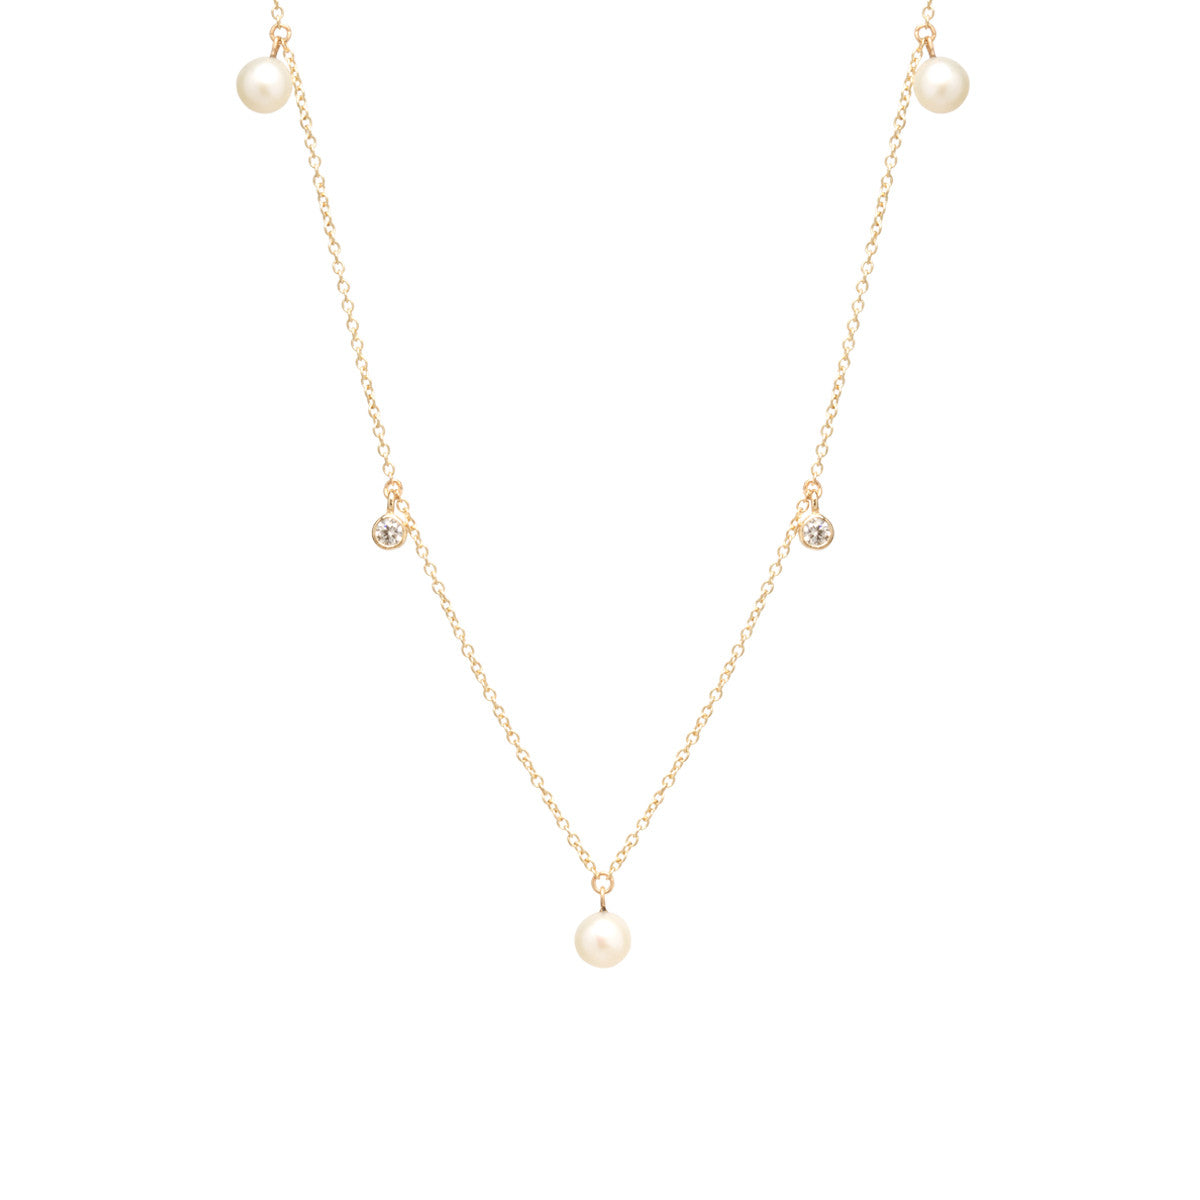 Zoë Chicco 14k Gold Gemstone Charm Necklace with White Diamond ExTXzmR